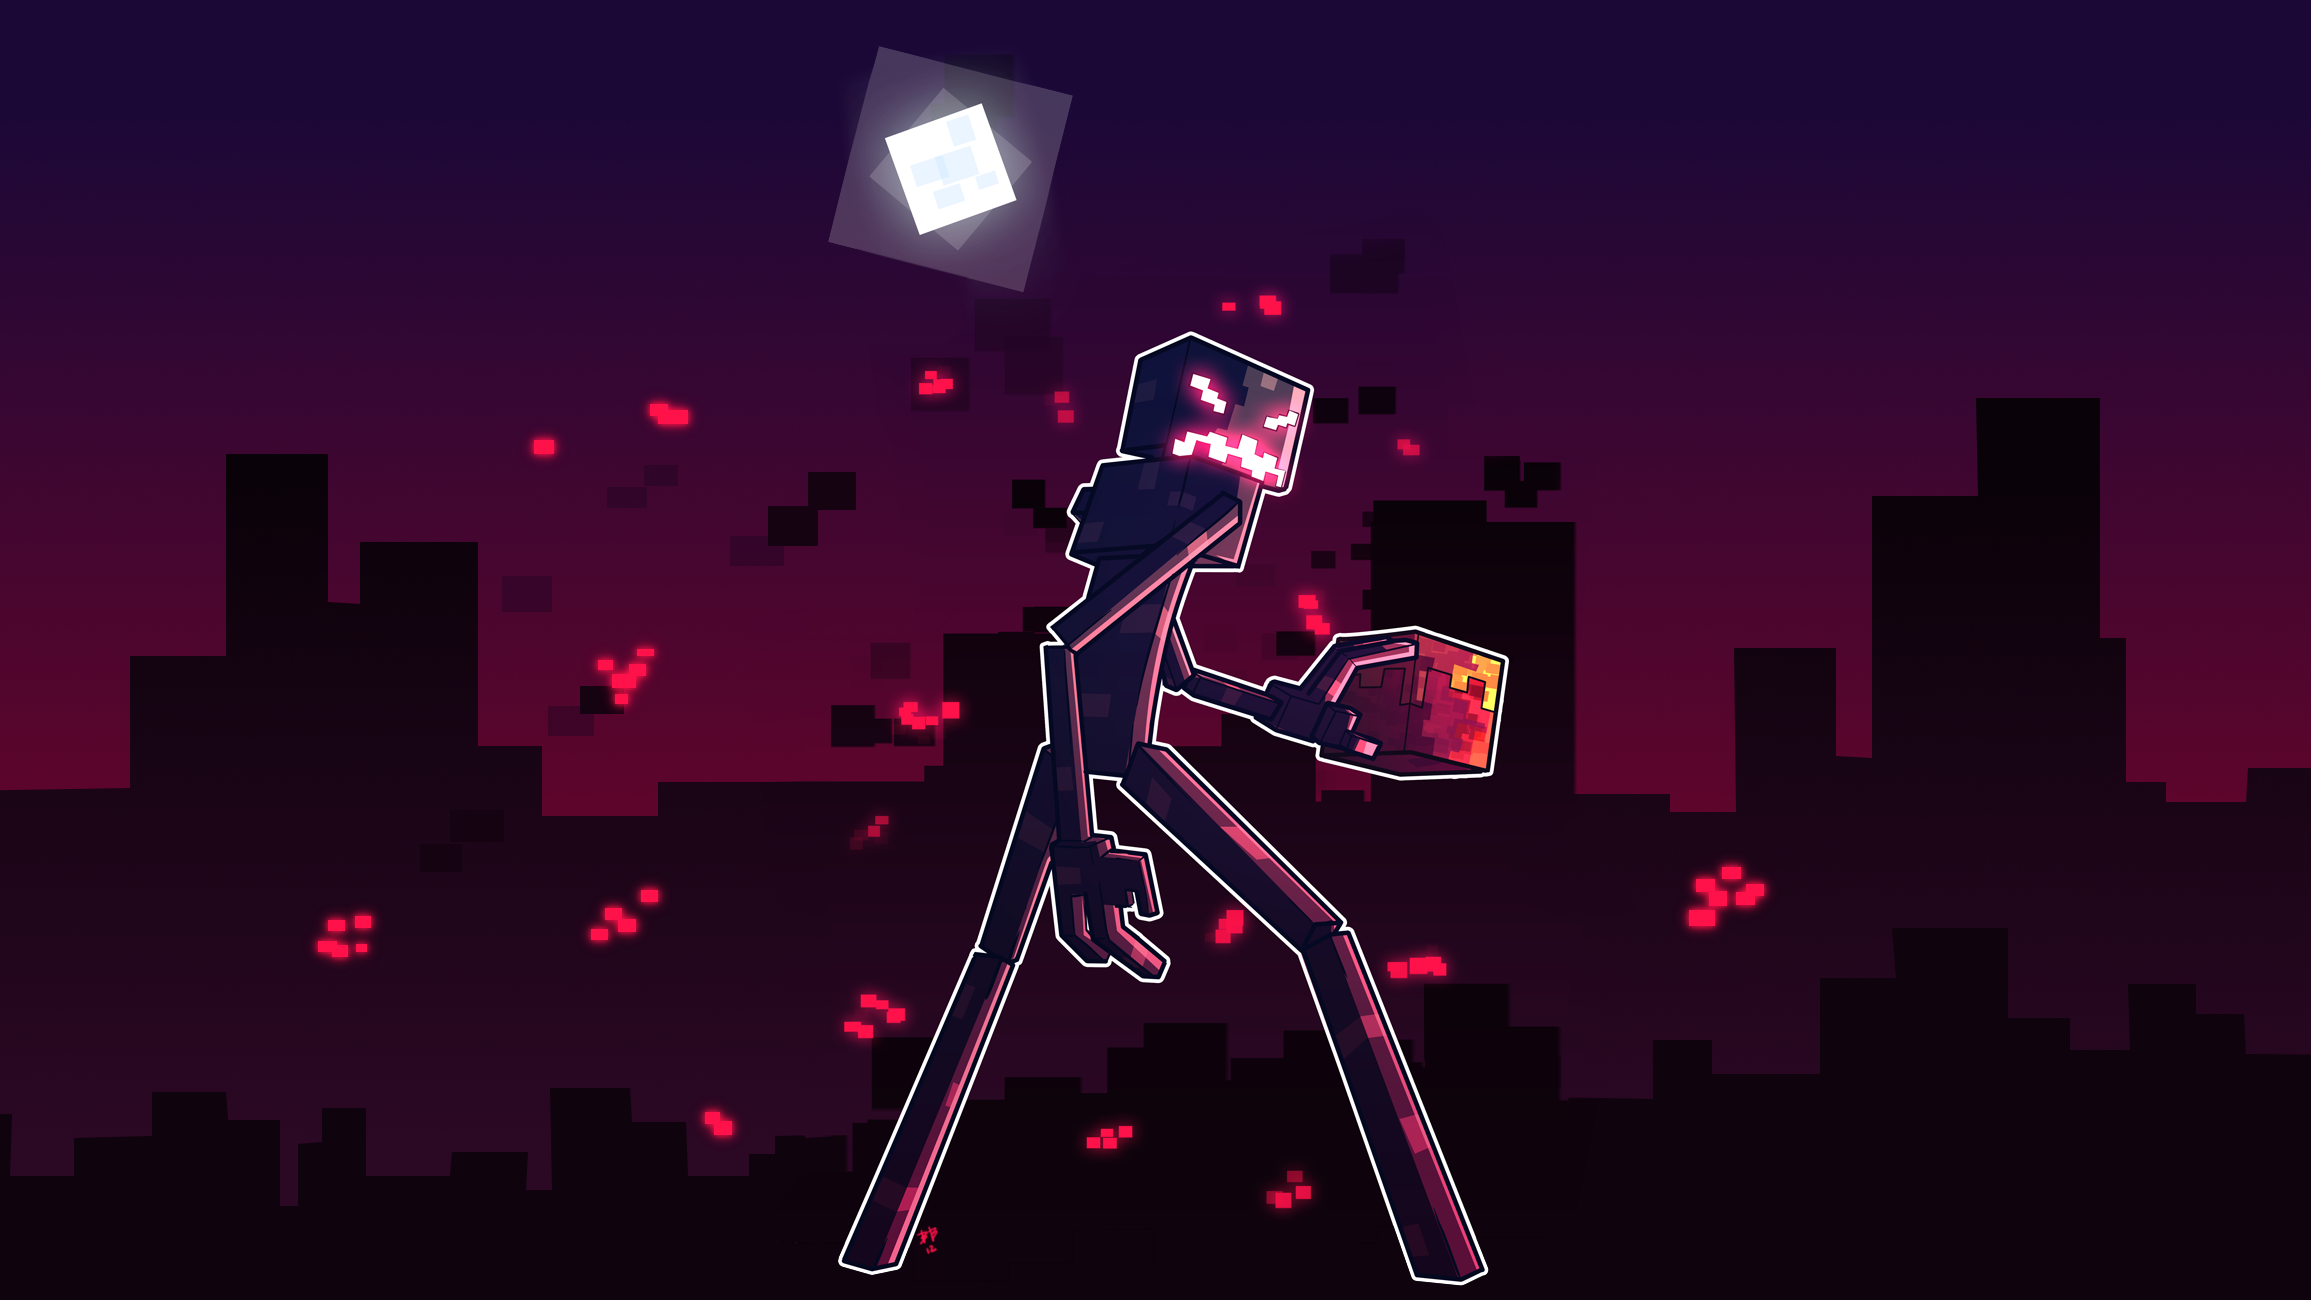 Enderman Wallpaper Image